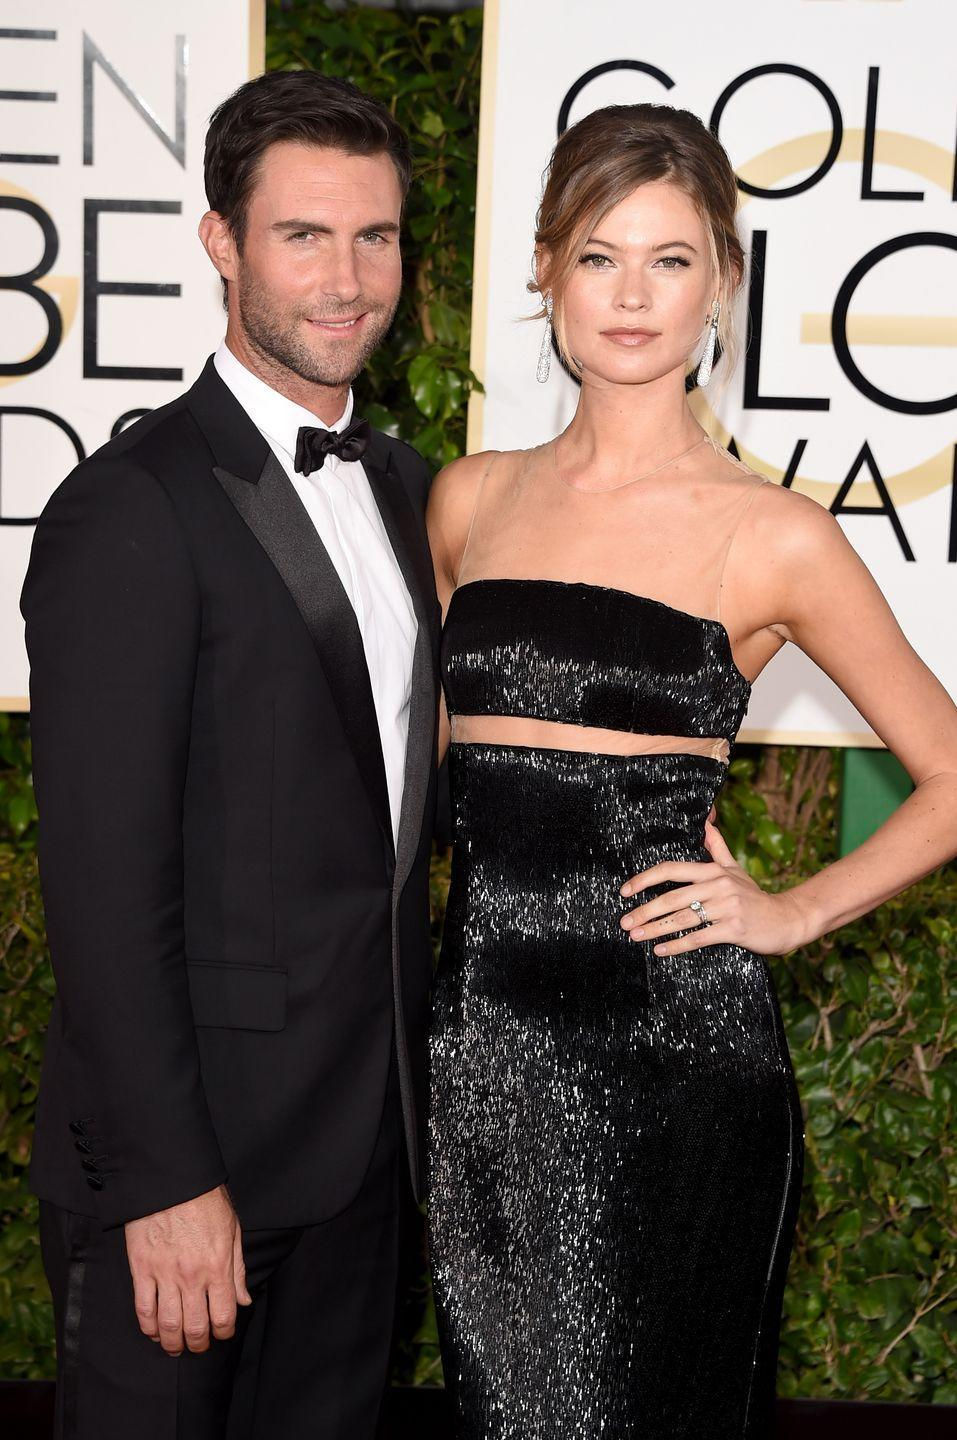 "<p>Known for his modelizing ways before finally settling down, Levine, then 34, met Prinsloo, then 24, in June 2012 after he ended his relationship with Prinsloo's close friend and fellow VS model Anne Vyalitsyna. The couple got engaged in 2013 and later <a href=""http://people.com/celebrity/adam-levine-married-maroon-5-rocker-weds-behati-prinsloo-in-mexico/"" rel=""nofollow noopener"" target=""_blank"" data-ylk=""slk:tied the knot"" class=""link rapid-noclick-resp"">tied the knot</a> in 2014 in Los Cabos, Mexico. Prinsloo gave birth to baby girl <a href=""http://celebritybabies.people.com/2016/09/22/adam-levine-behati-prinsloo-welcome-daughter-dusty-rose/"" rel=""nofollow noopener"" target=""_blank"" data-ylk=""slk:Dusty Rose"" class=""link rapid-noclick-resp"">Dusty Rose</a> in 2016, and gave birth to another daughter, <a href=""https://www.harpersbazaar.com/celebrity/latest/a18657945/behati-prinsloo-adam-levine-second-child/"" rel=""nofollow noopener"" target=""_blank"" data-ylk=""slk:Gio Grace"" class=""link rapid-noclick-resp"">Gio Grace</a>, in February 2018.</p>"